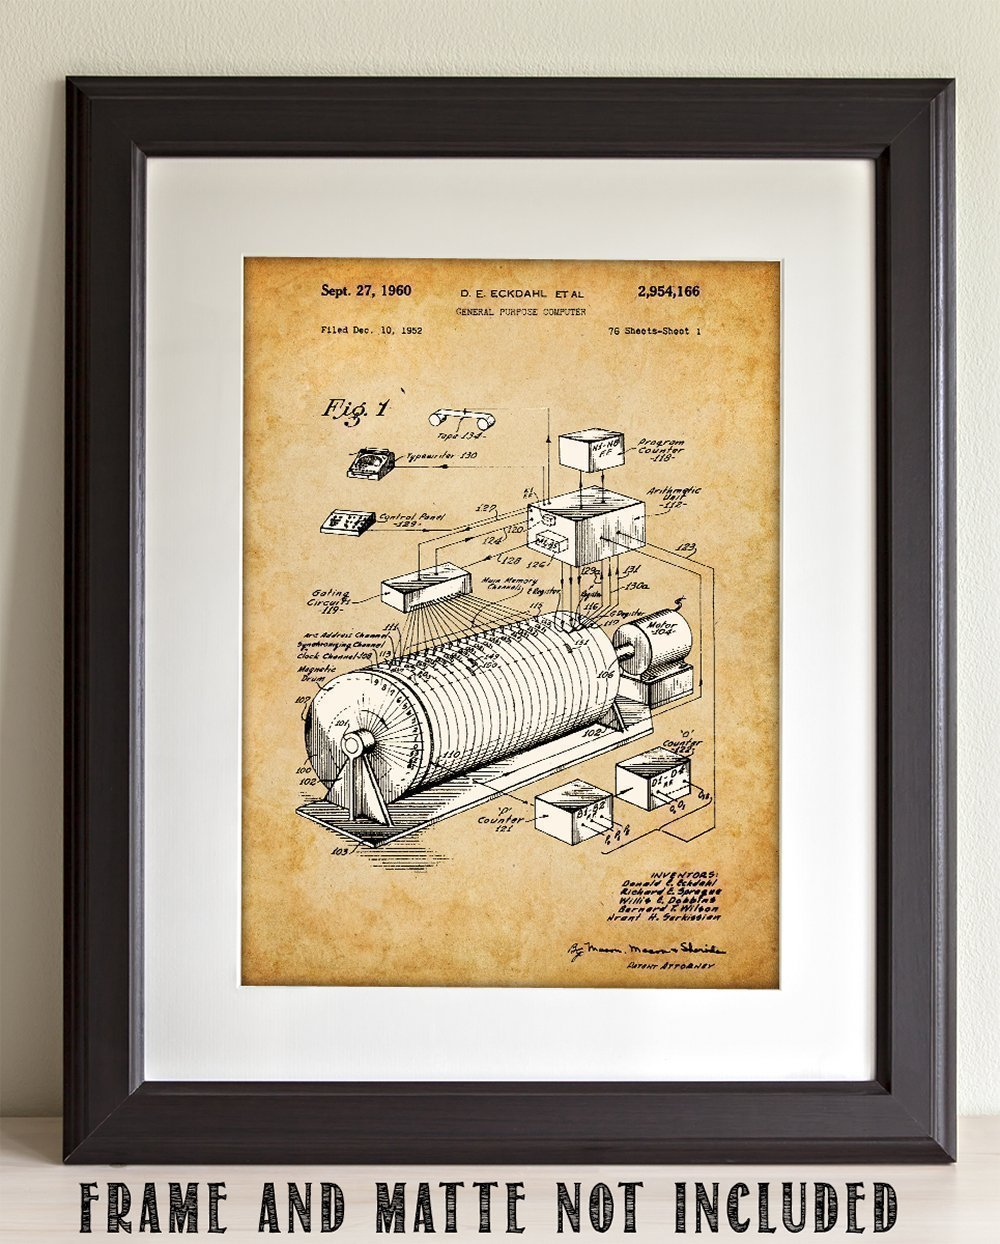 Eckdahl Computer 1960 Patent - 11x14 Unframed Patent Print - Great Gift for IT Professionals, Programmers and Geeks by Personalized Signs by Lone Star Art (Image #2)